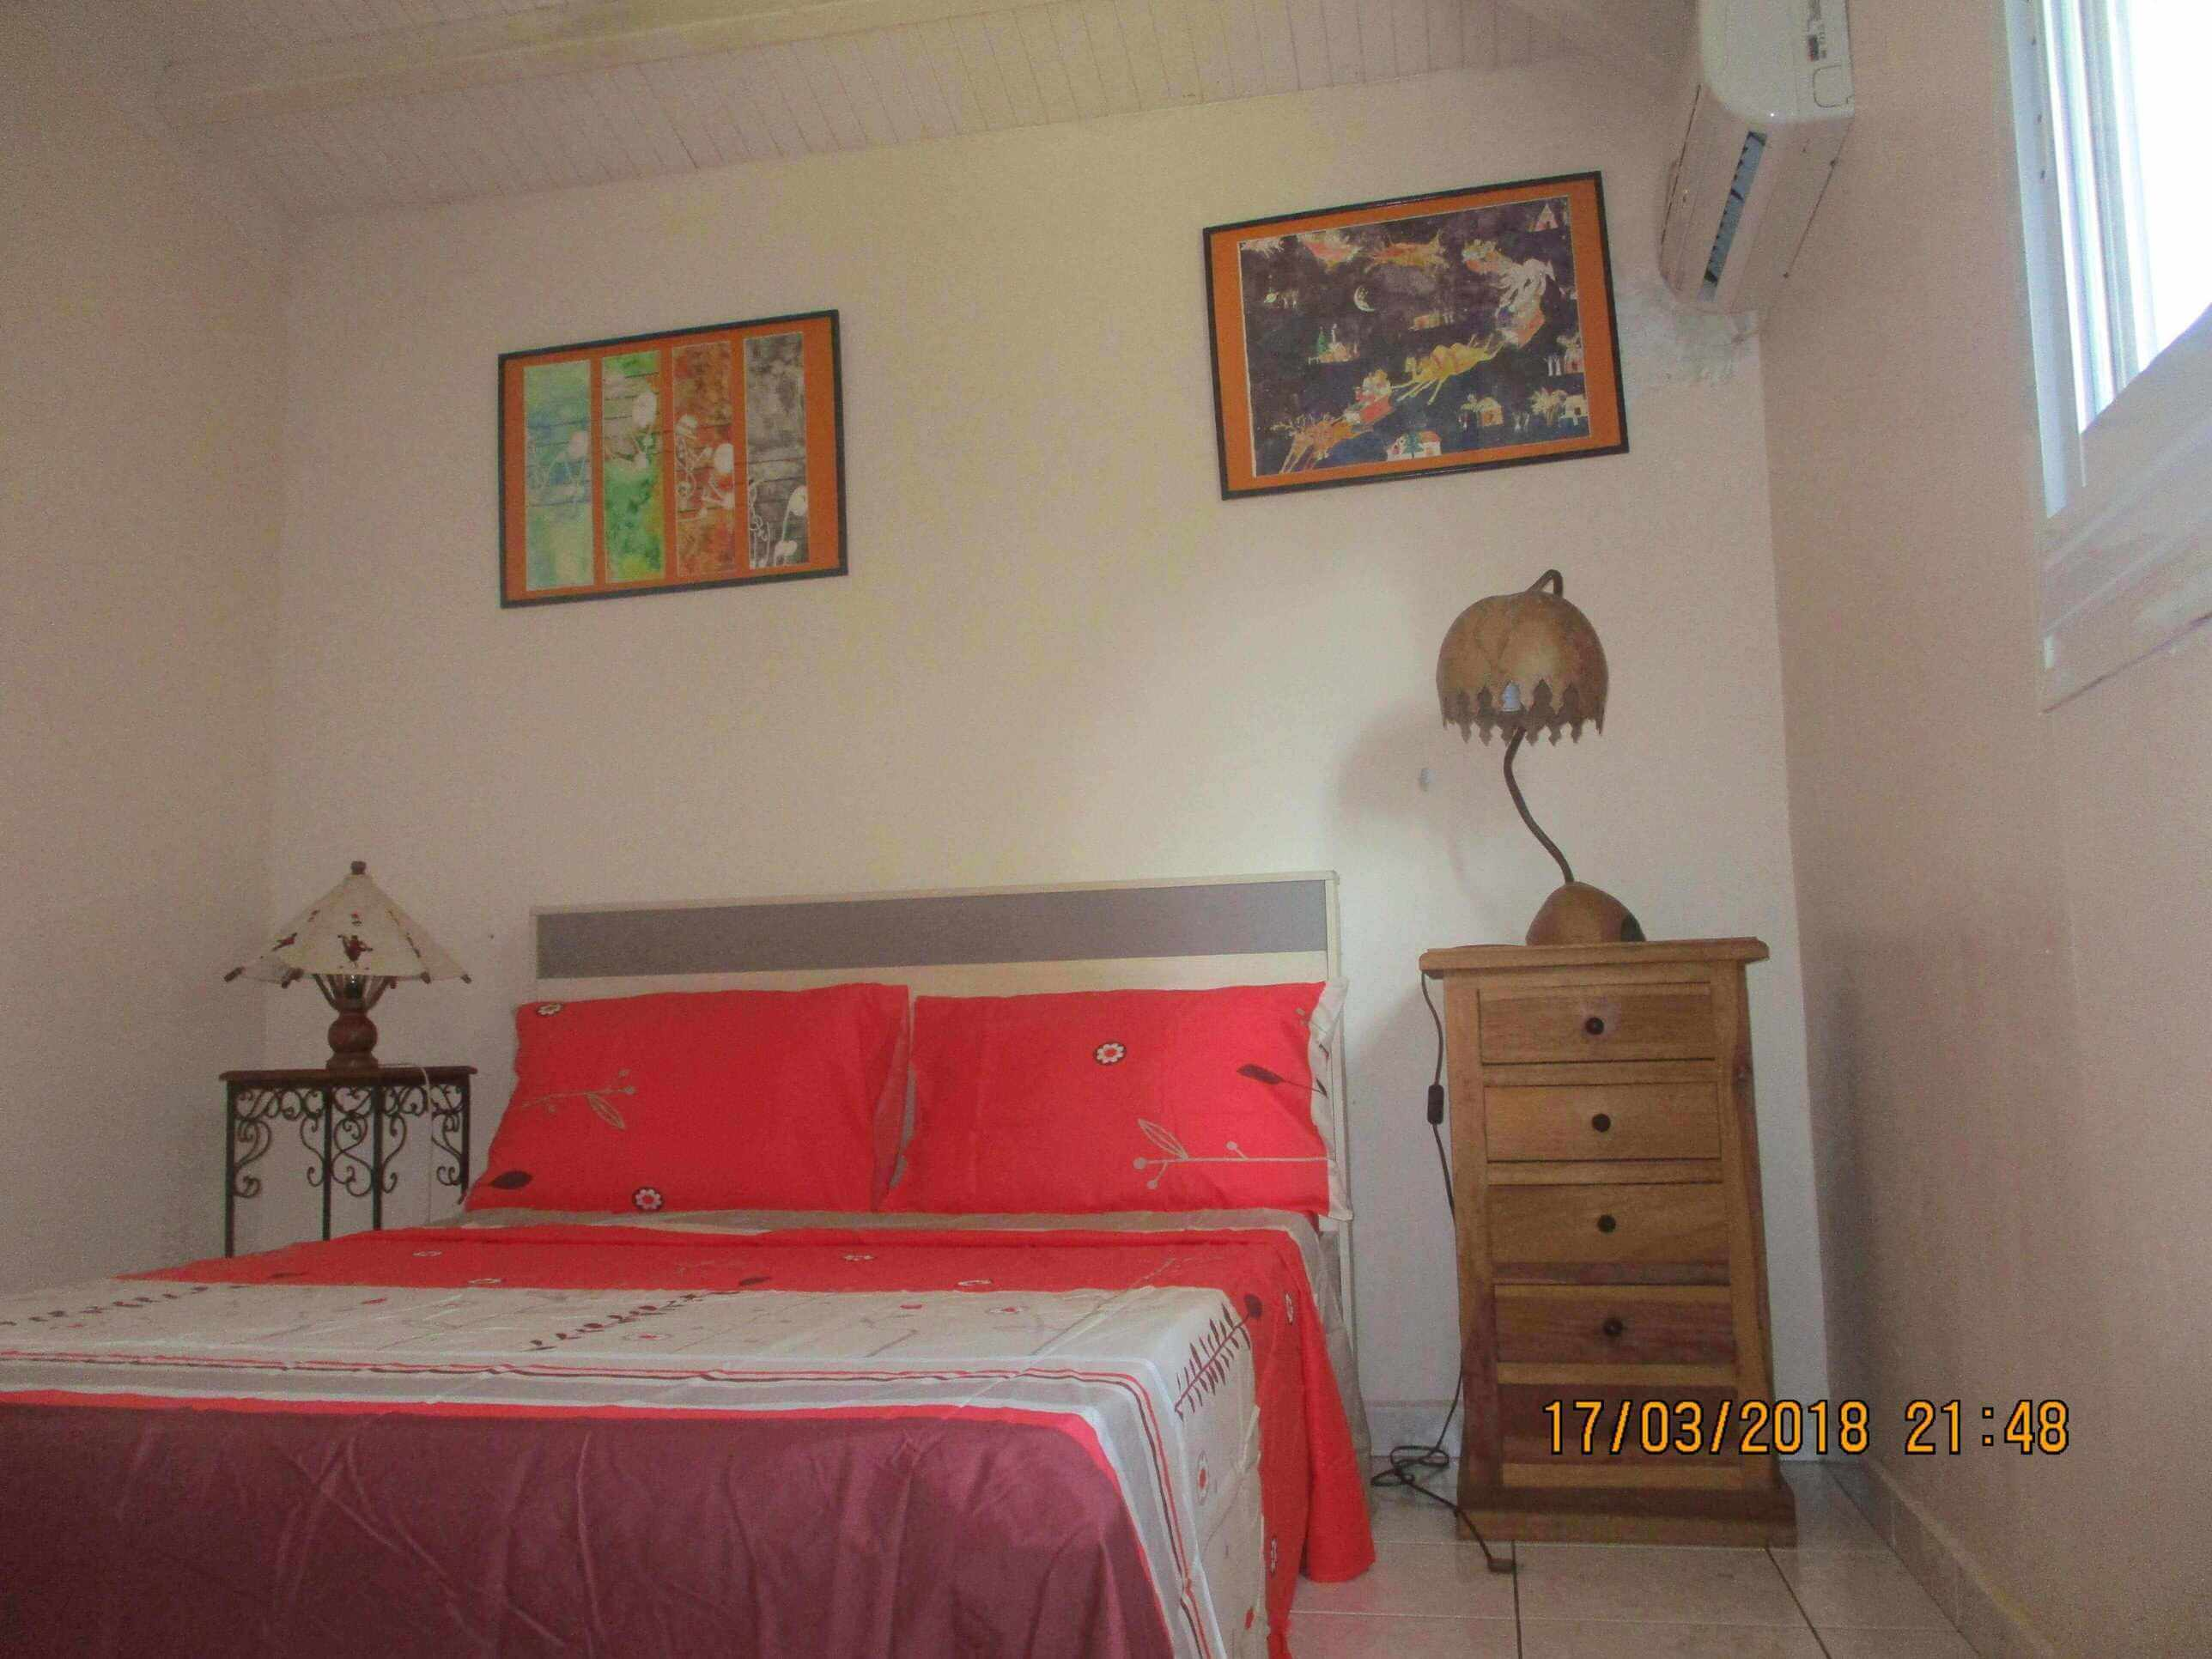 Location maison guadeloupe saint fran ois 128 for Location maison